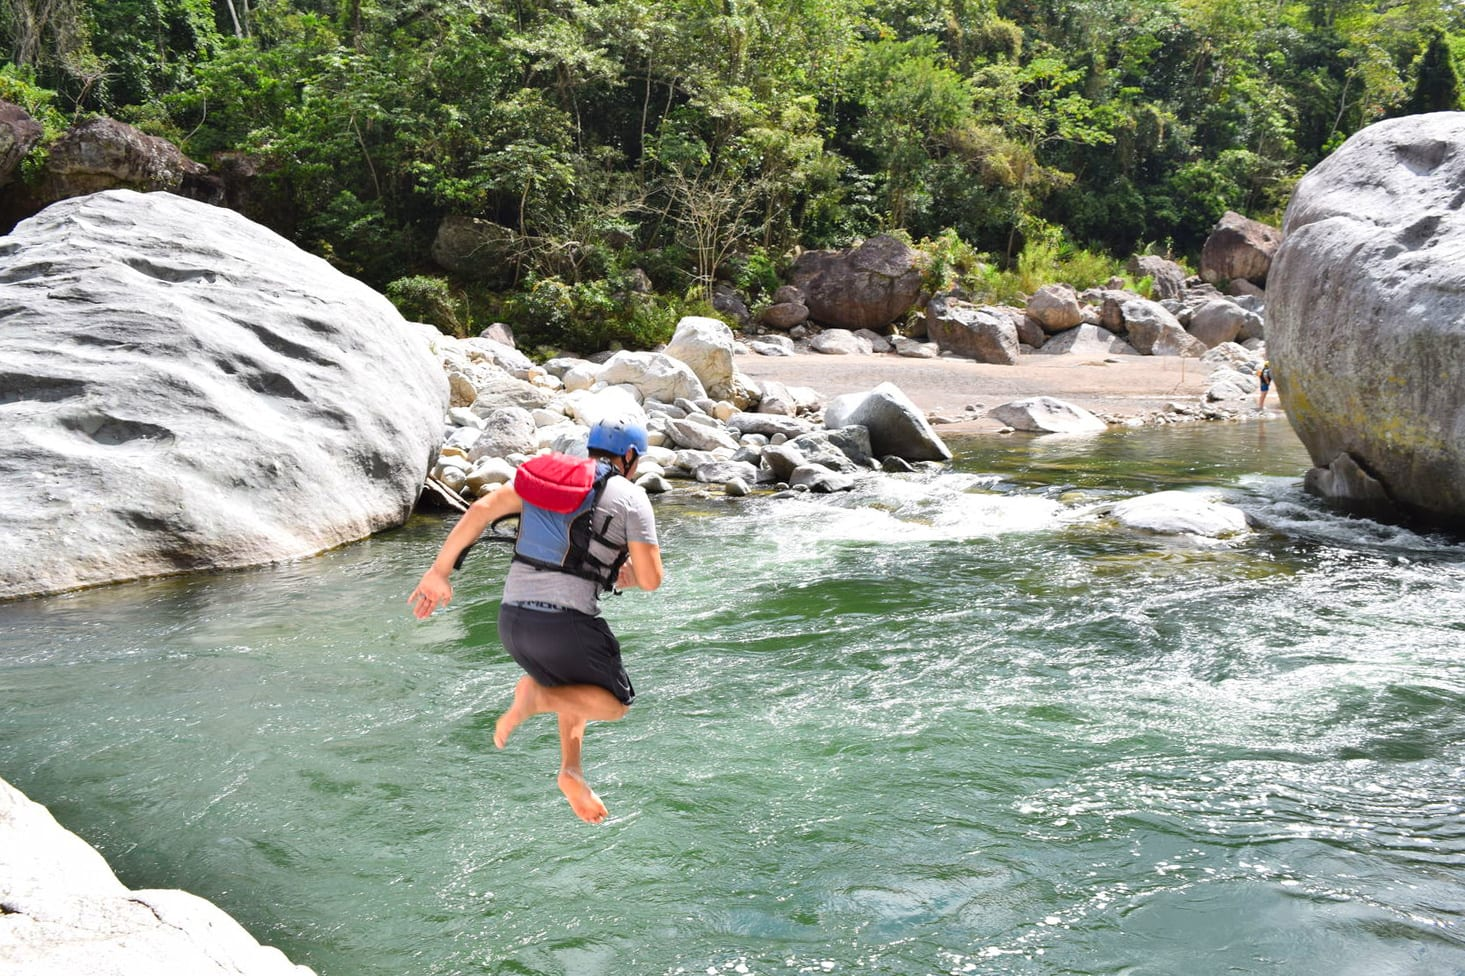 Whitewater Rafting in Honduras: Jeremy Storm jumping into Rio Cangrejal